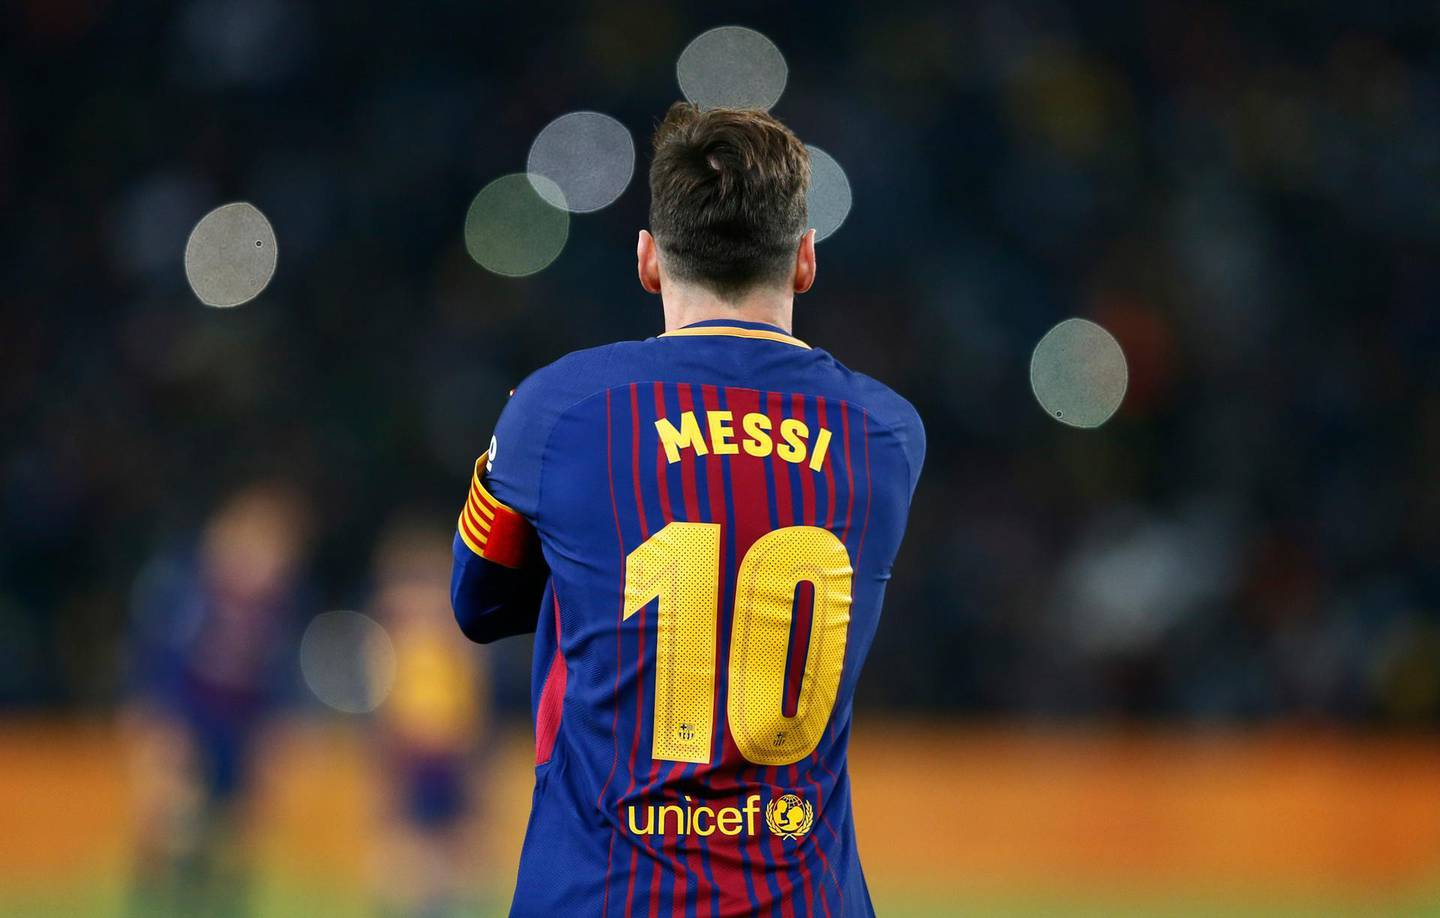 Barcelona forward Lionel Messi watches the pitch during their friendly match Mamelodi Sundowns vs Barcelona FC for the Mandela Centenary Trophy on May 16, 2018 at FNB Soccer Stadium in Johannesburg. / AFP / PHILL MAGAKOE